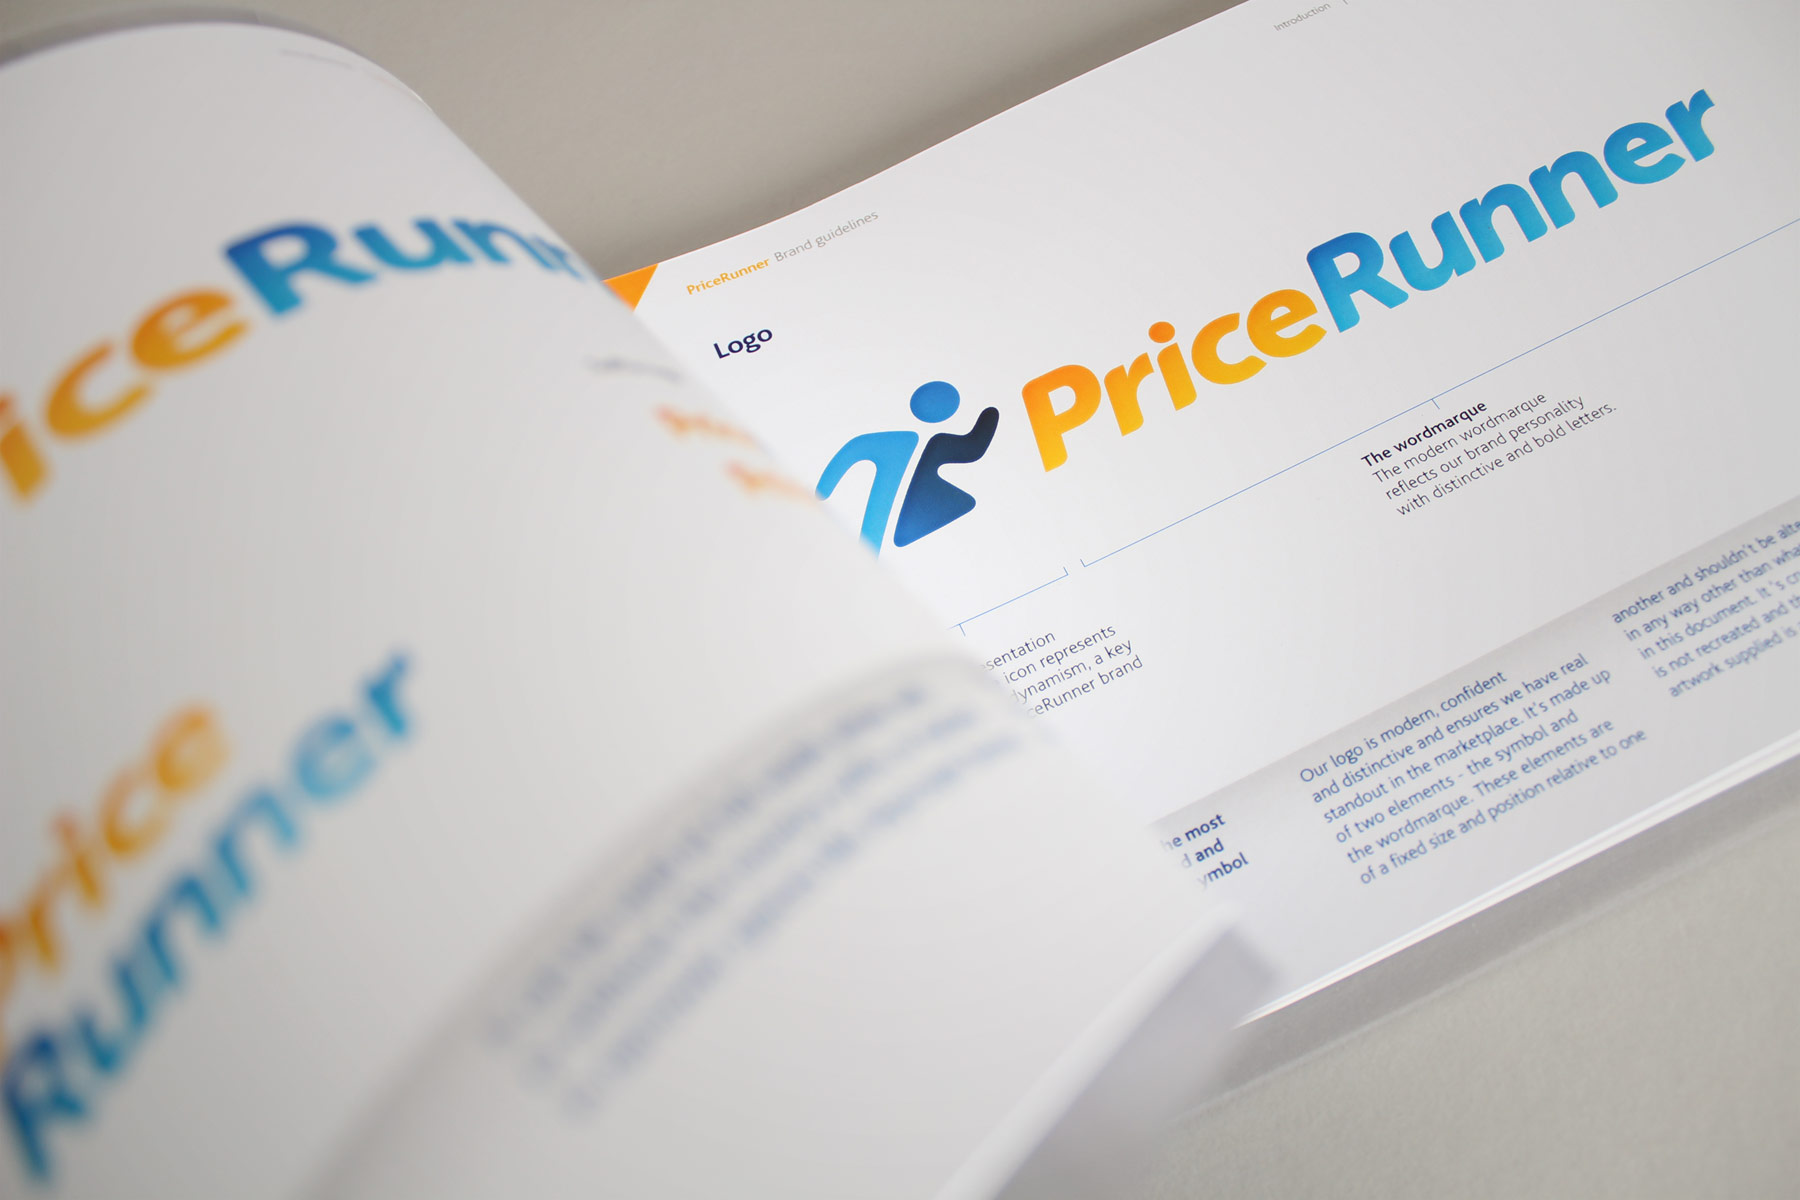 We have created a full set of tone and brand guidelines designed to support the internal PriceRunner marketing teams.